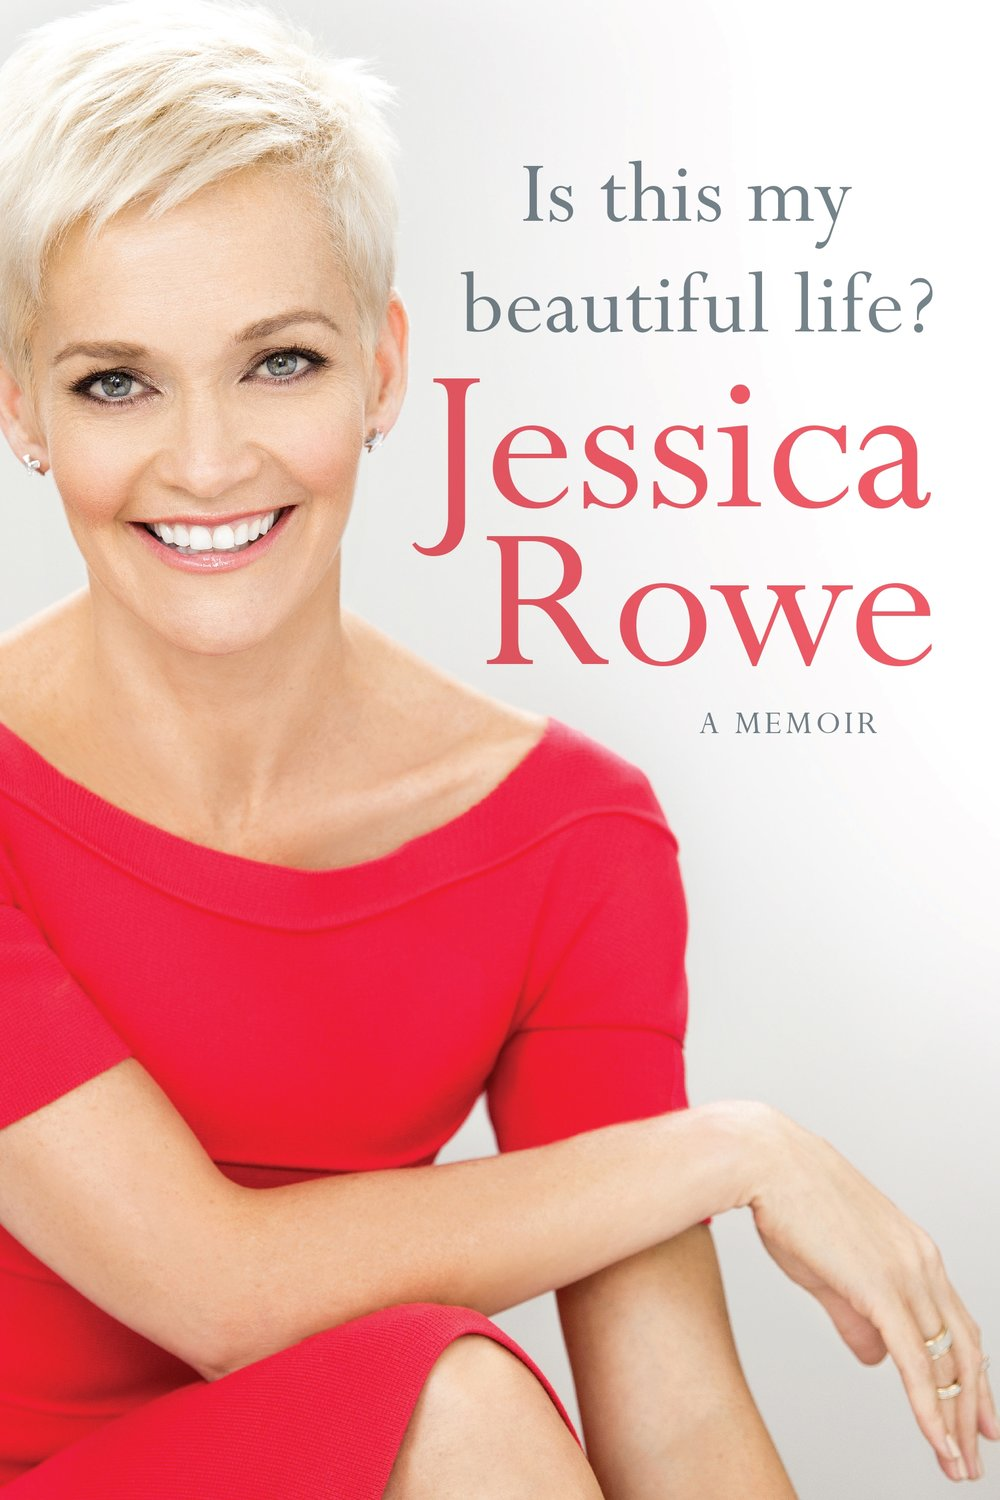 Is This My Beautiful Life? - The deeply honest, funny, gut-wrenching and touching memoir from journalist, celebrity, wife, mother, television presenter and author, Jessica Rowe.